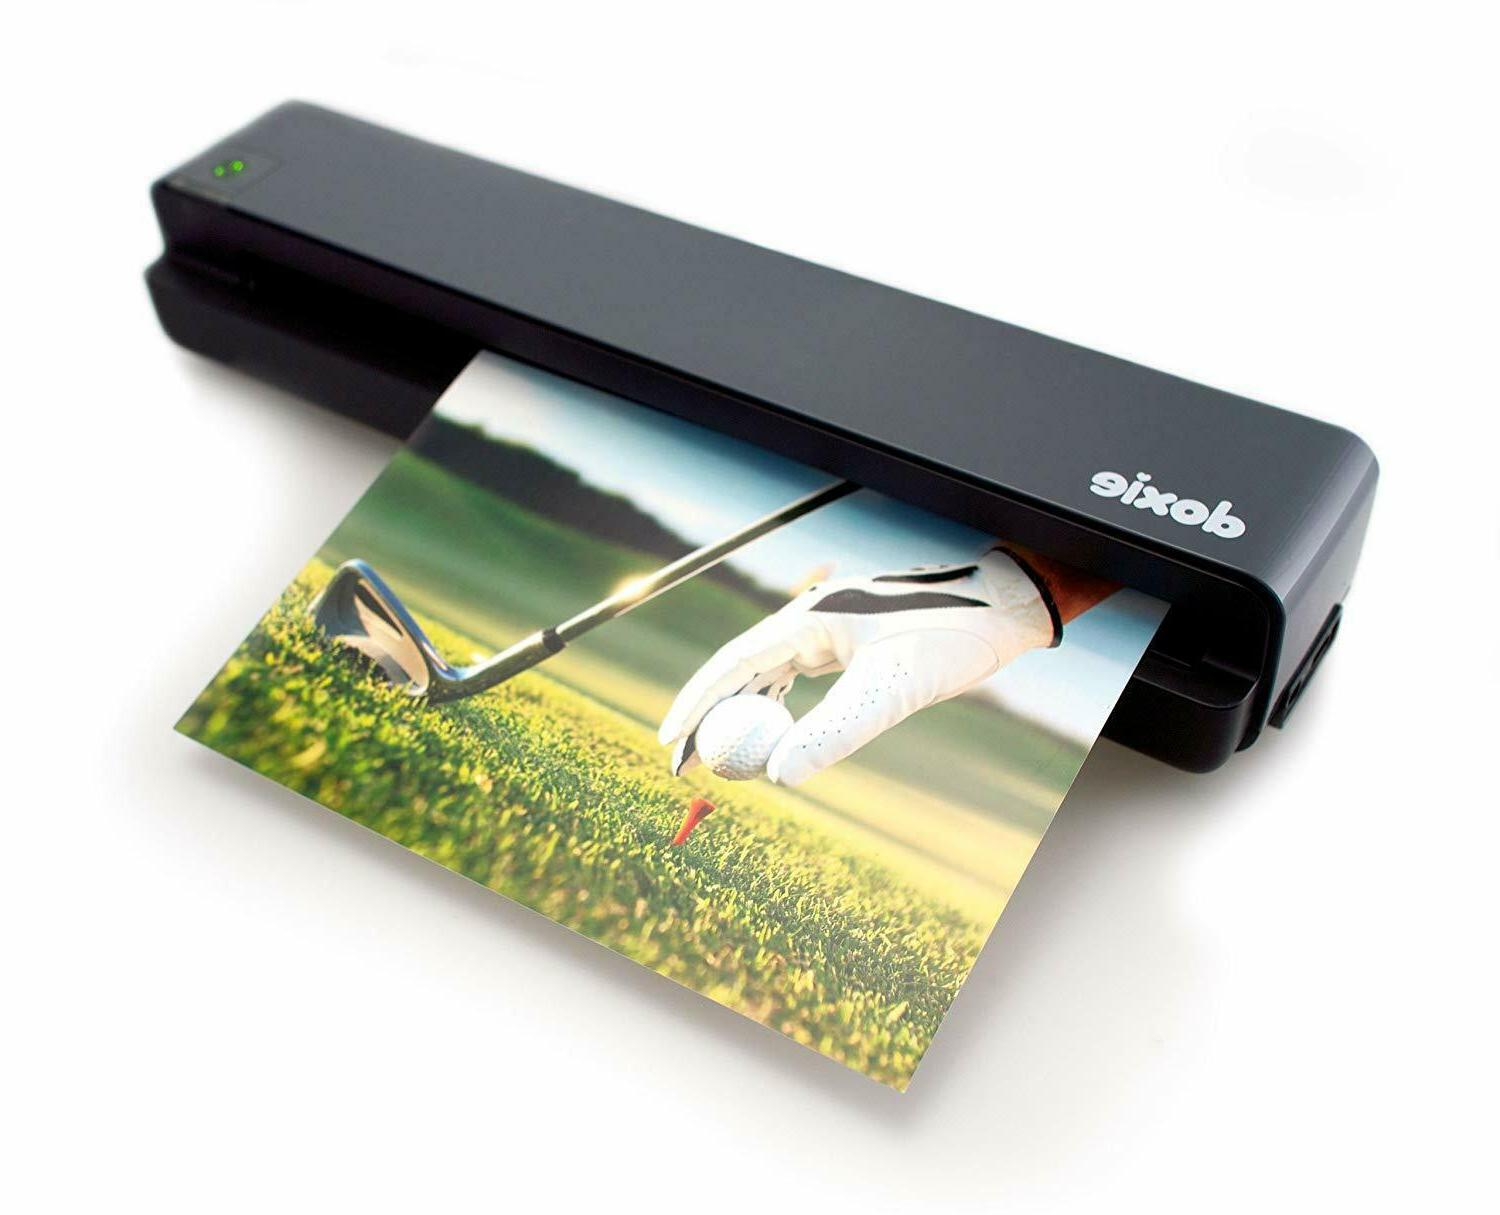 Doxie One Portable Photo Scanner Standalone New